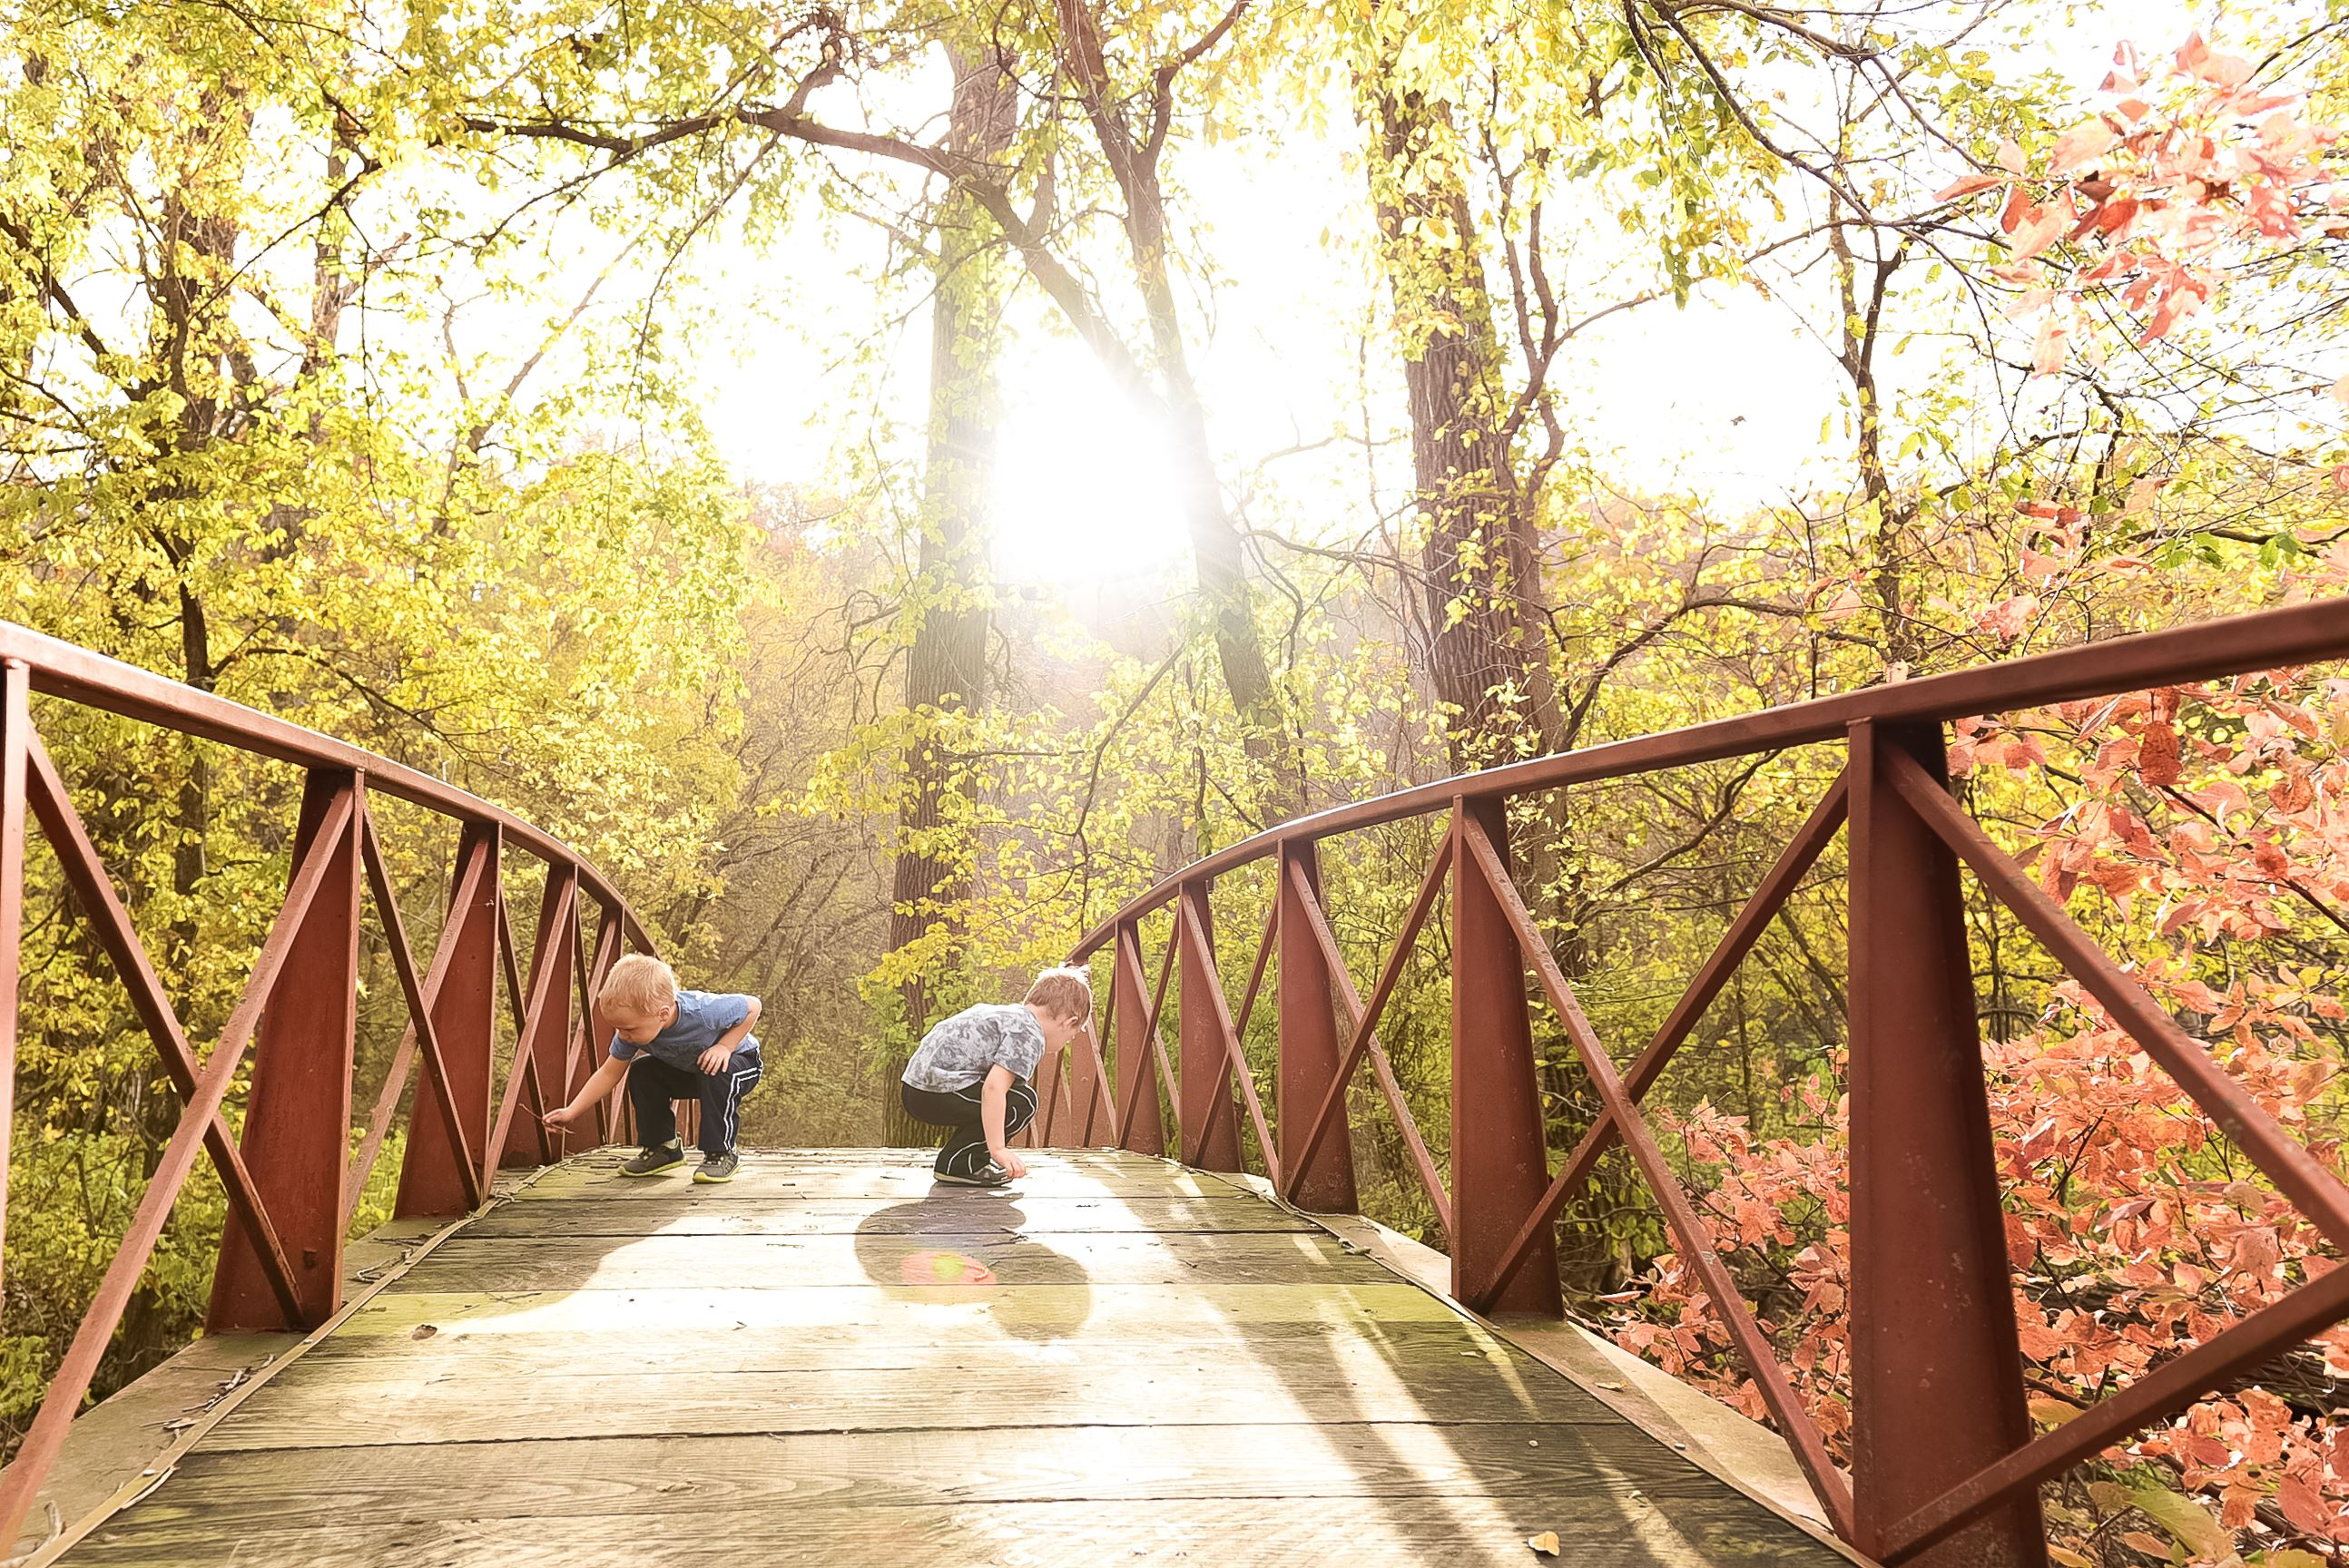 Image of 2 children playing on a bridge at Seven Mile Creek